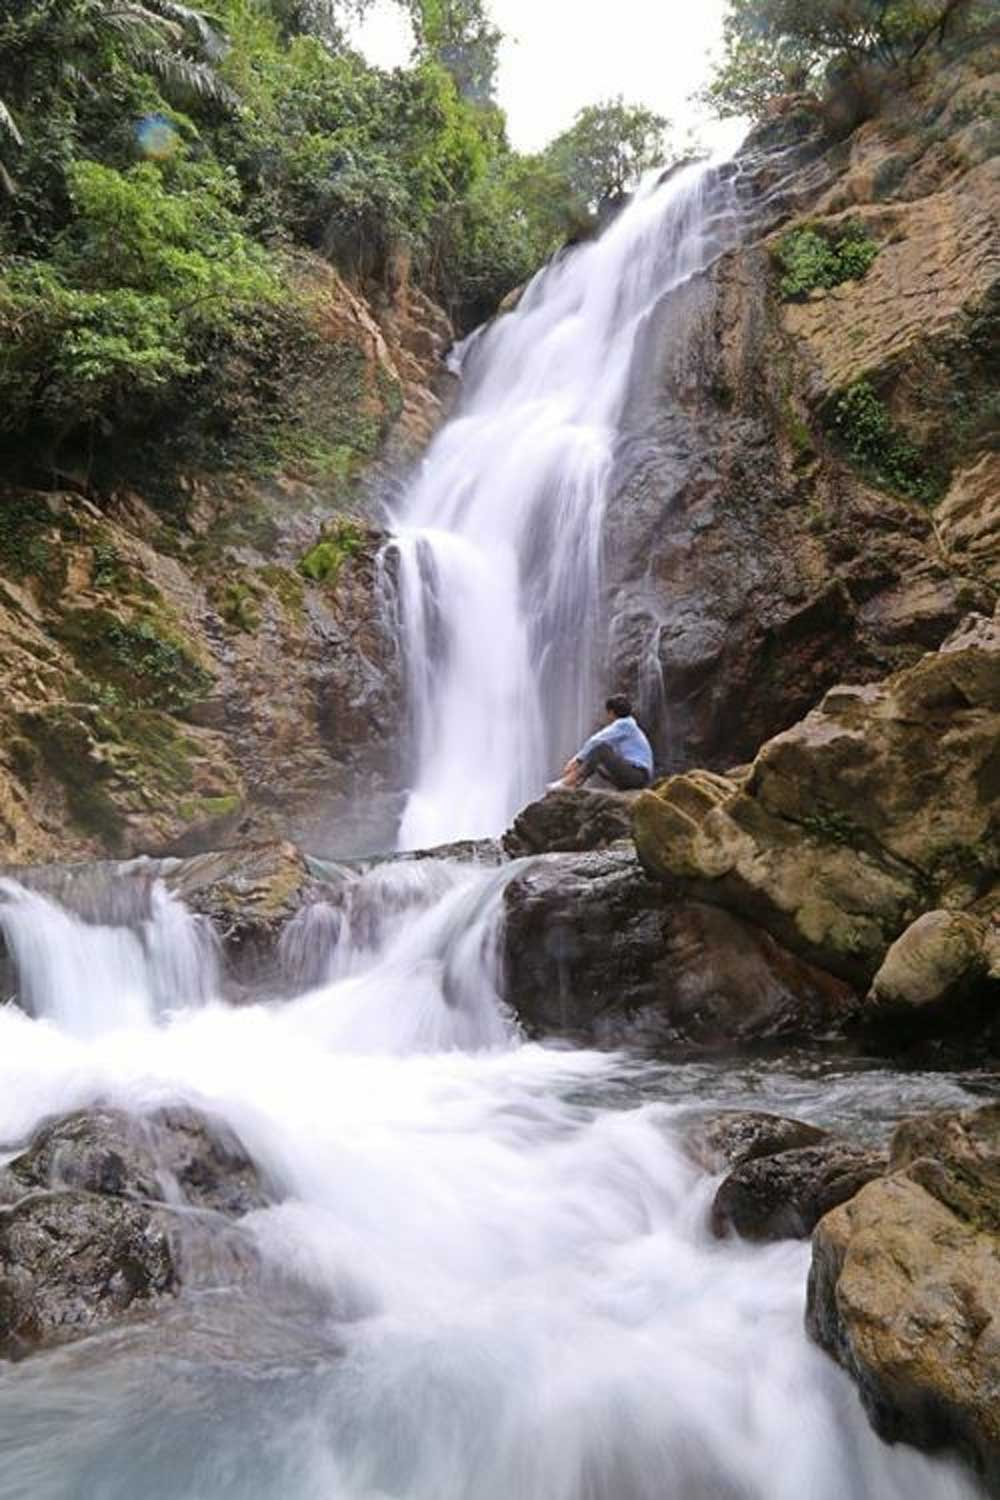 35-meter-tall waterfall, hidden charm, Quang Tri province, unspoilt beauty,  Truong Son mountain range, bountiful flow